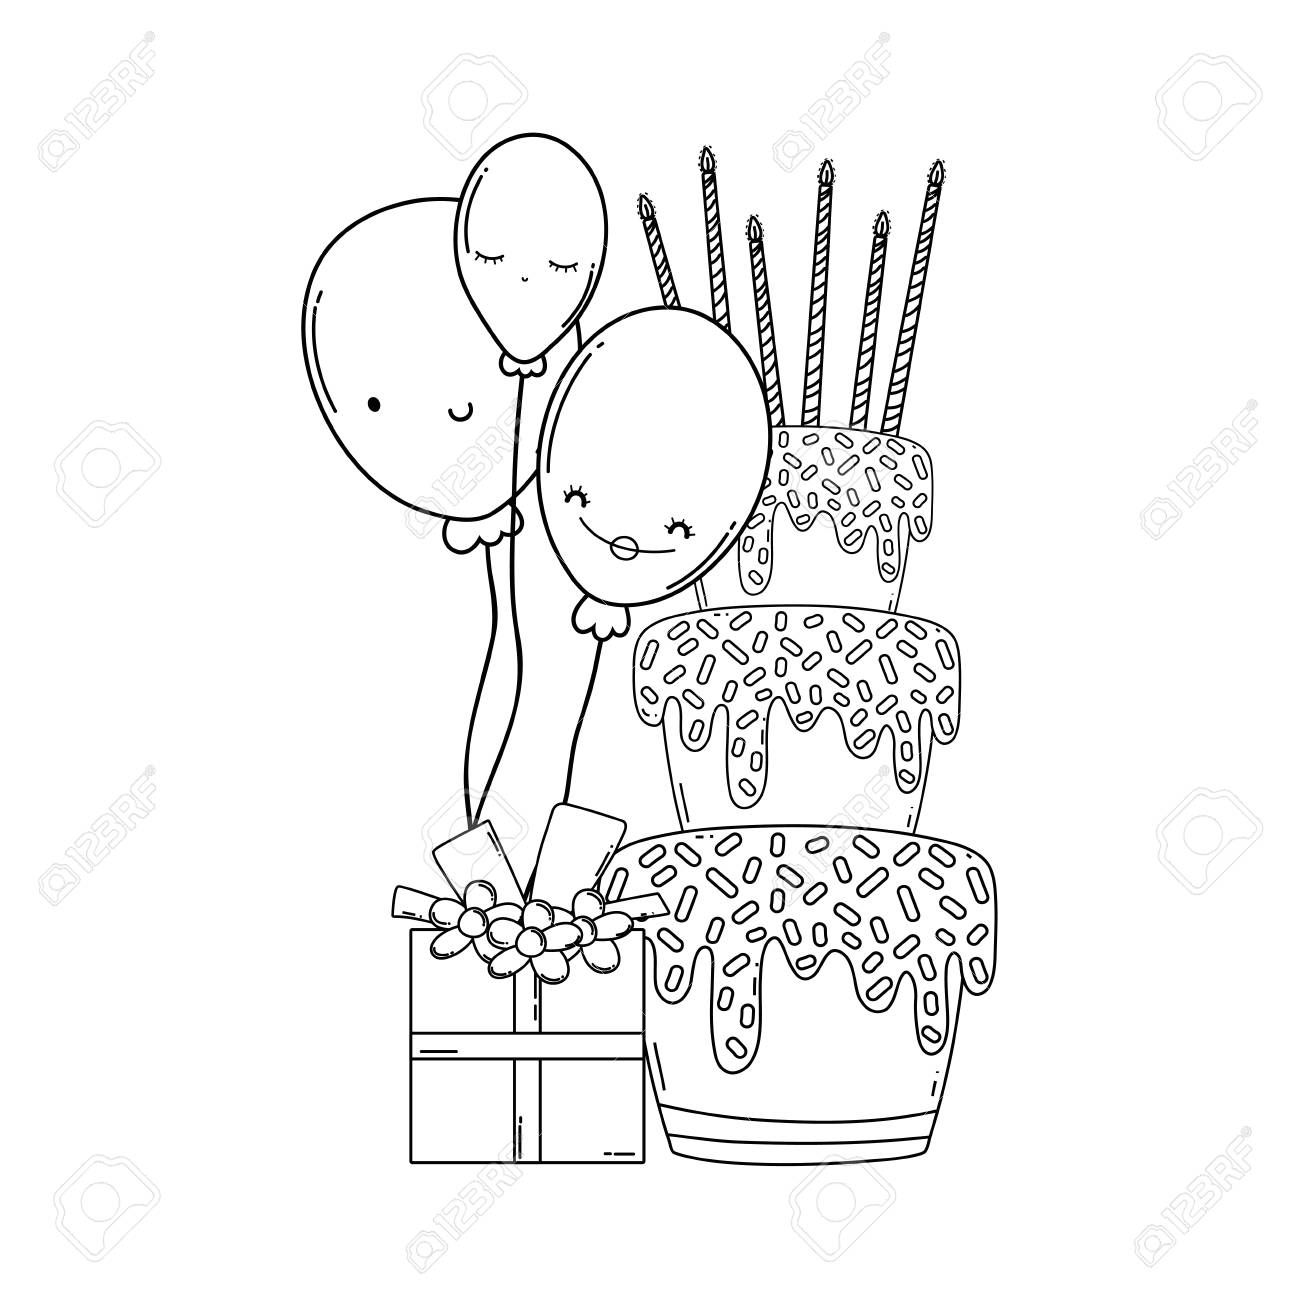 Birthday Cake With Gift Cartoons In Black And White Stock Photo